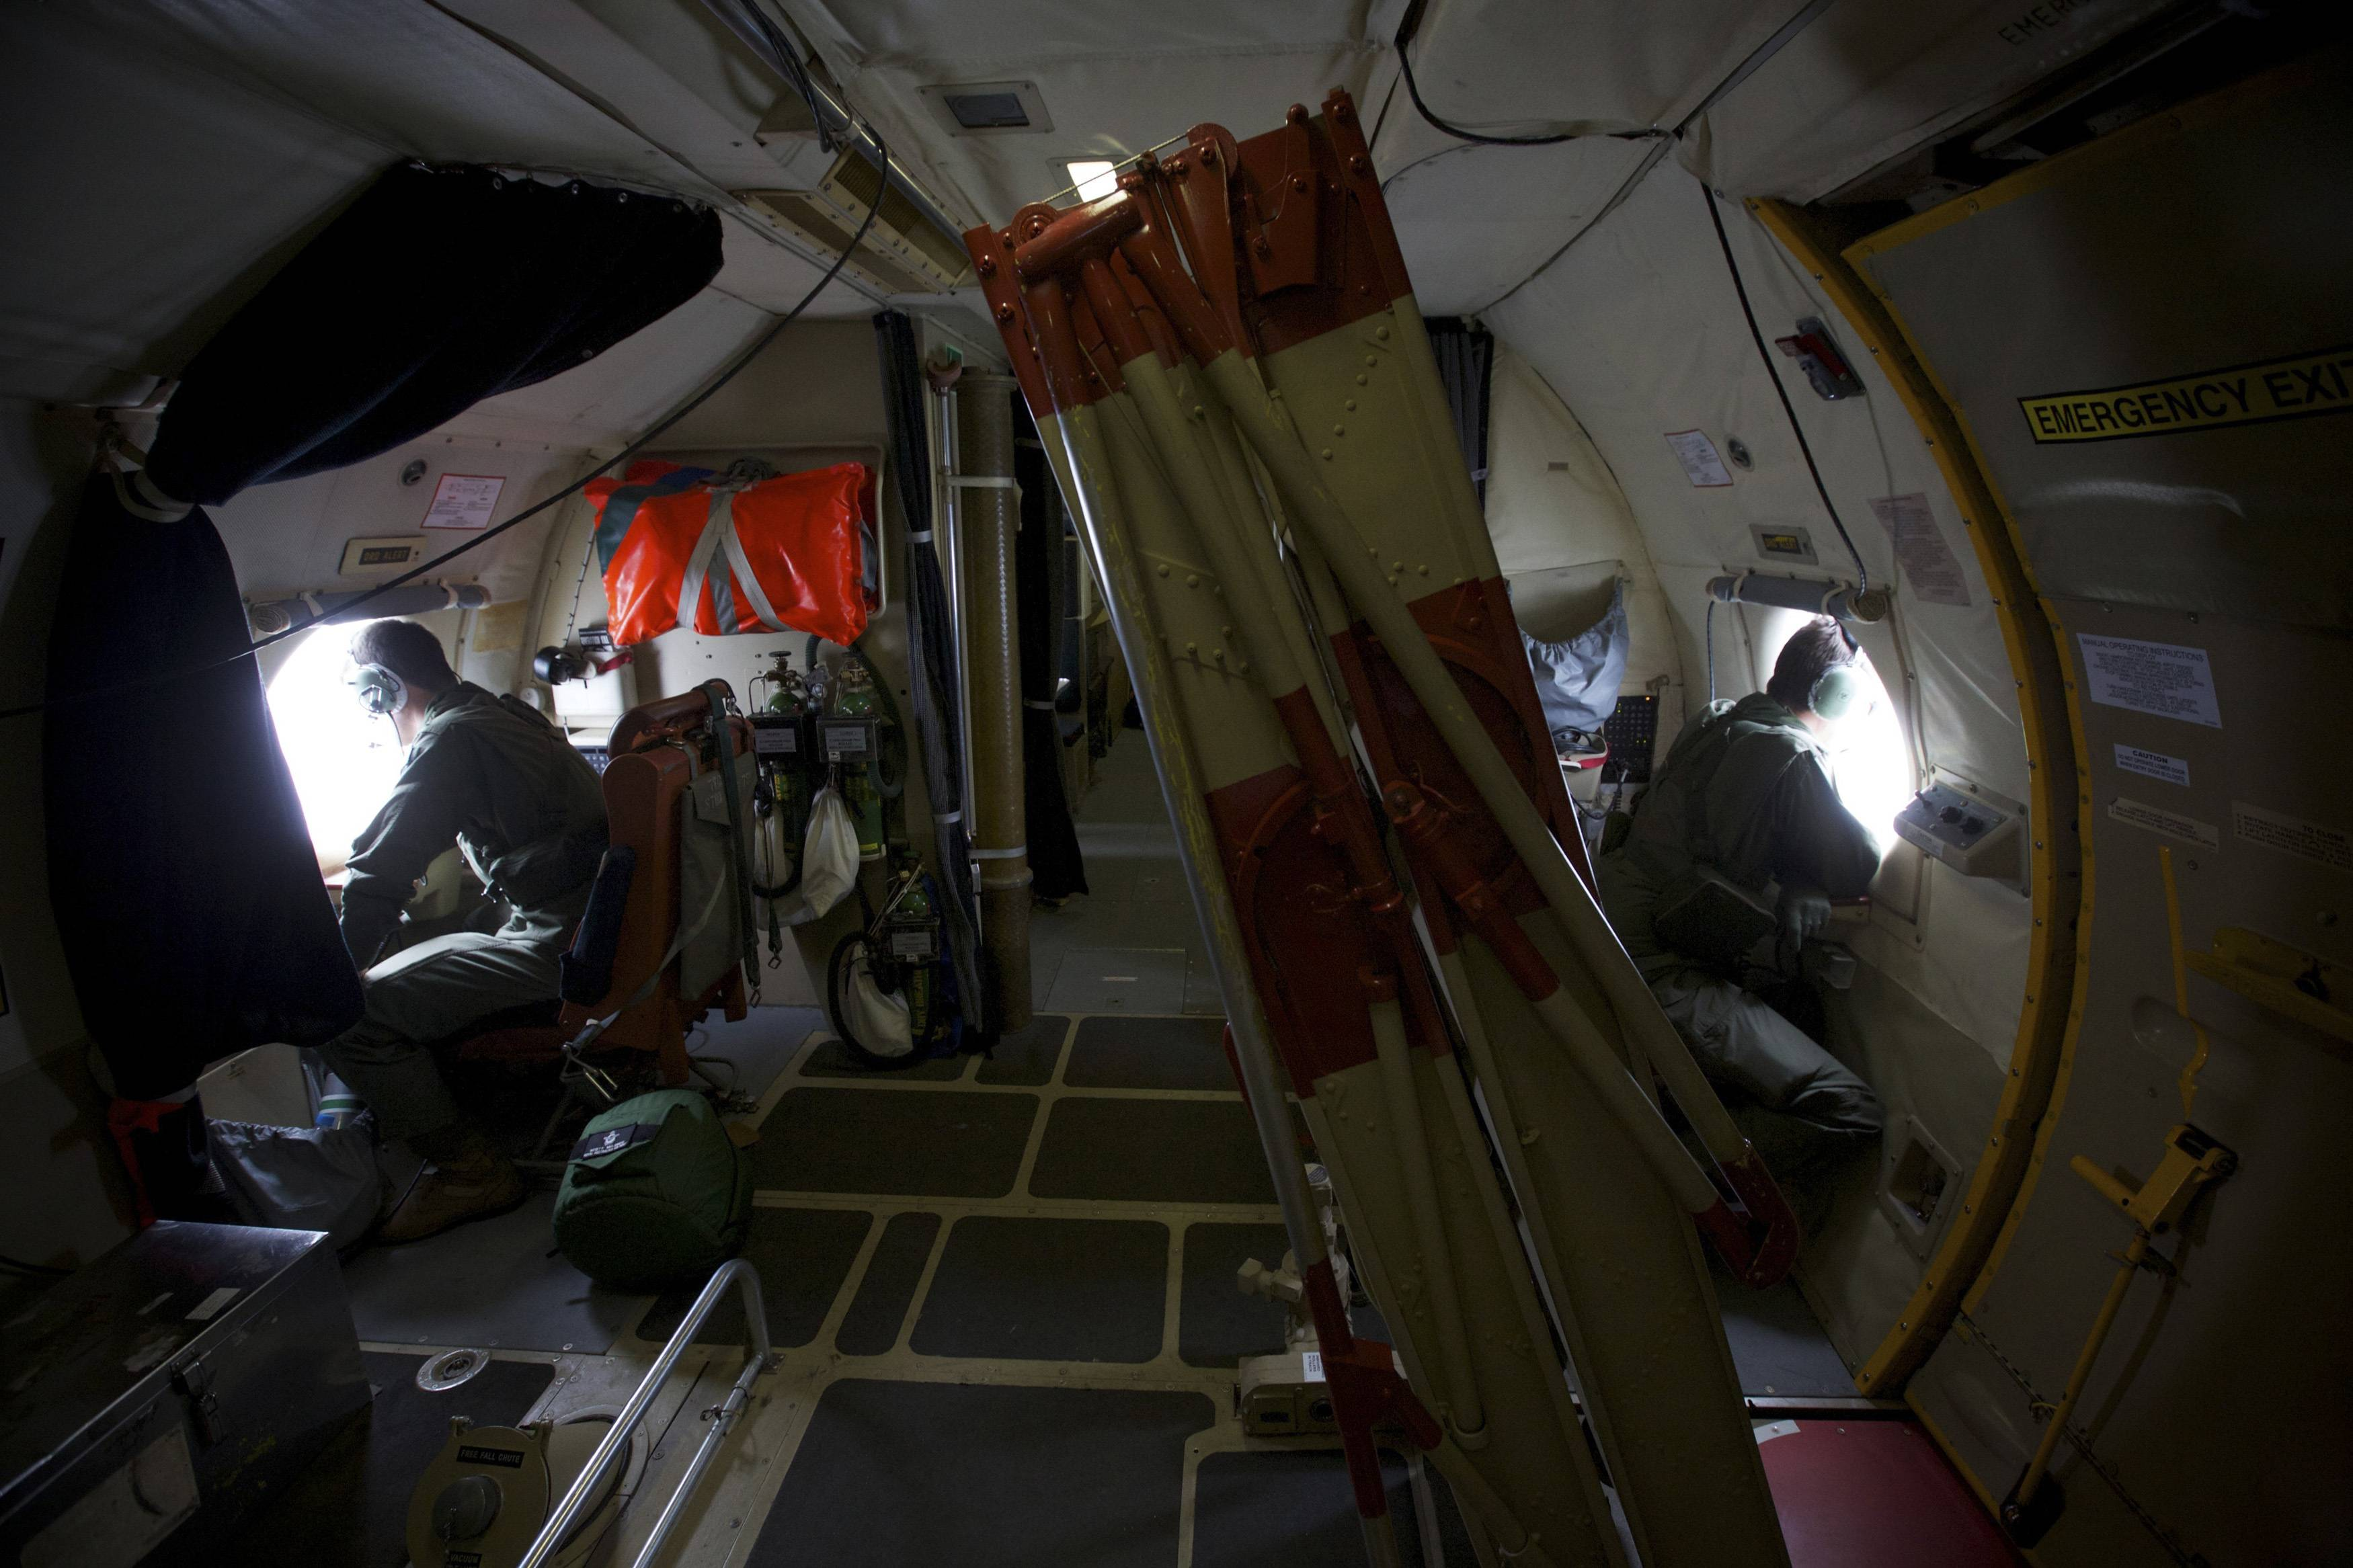 There are two spotters on either side of the aircraft. They rest their elbows on a padded shelf, their binoculars sitting at arm's reach. A small pocket near each window contains safety manuals, paperwork and a handful of barf bags. On at least one particularly bumpy flight, the crew had to use them.